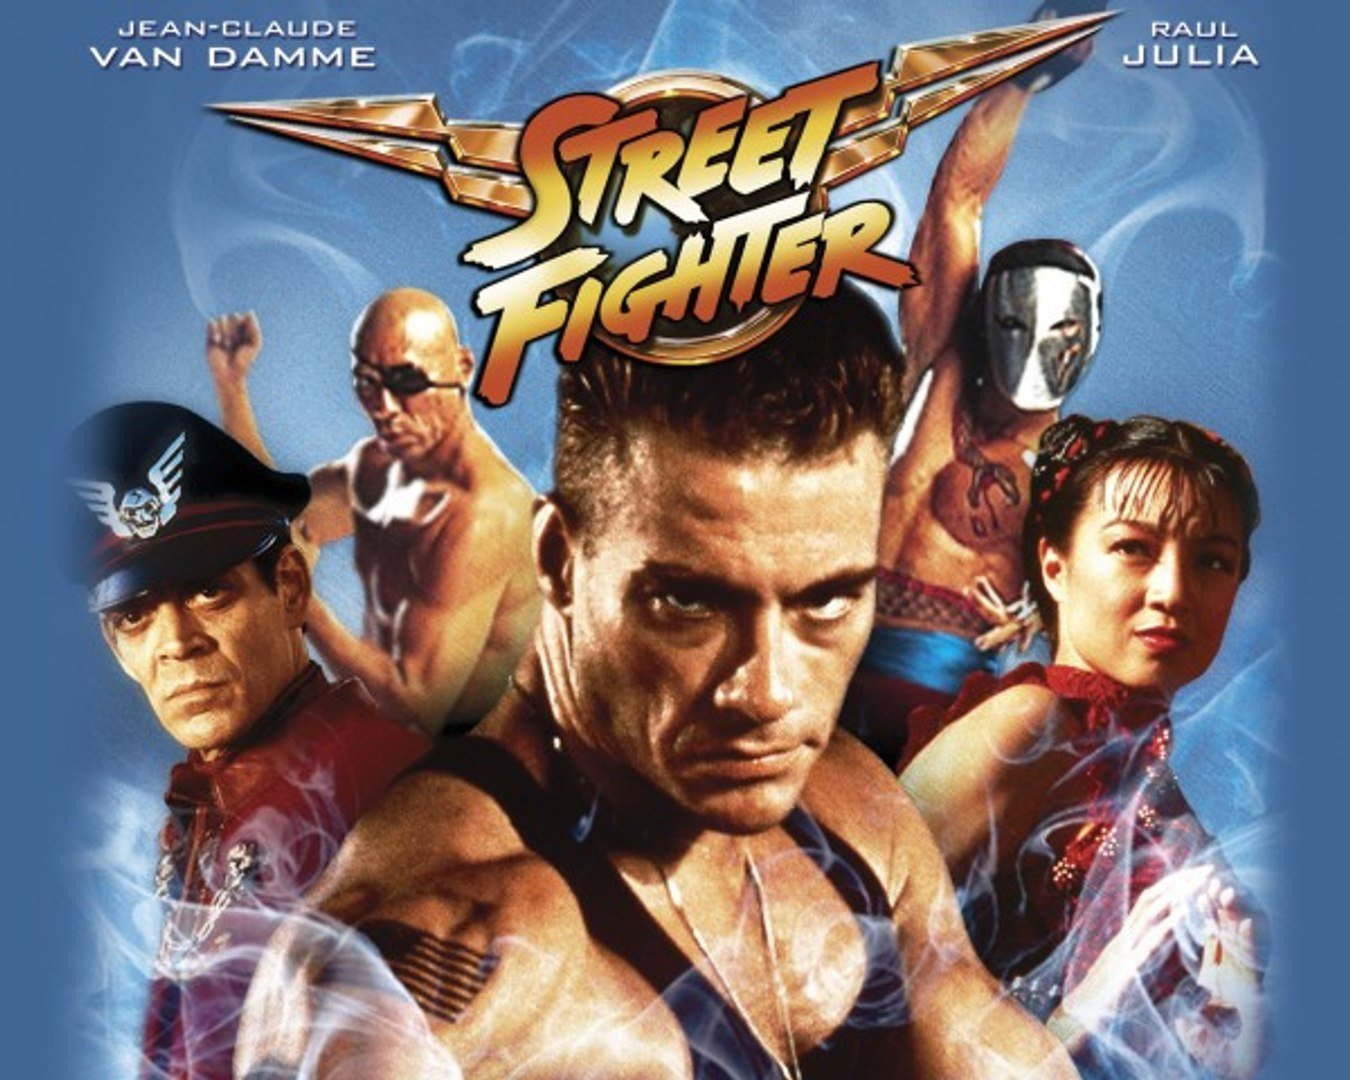 x1080 4 20 Things You Might Not Have Realised About The 1994 Street Fighter Movie